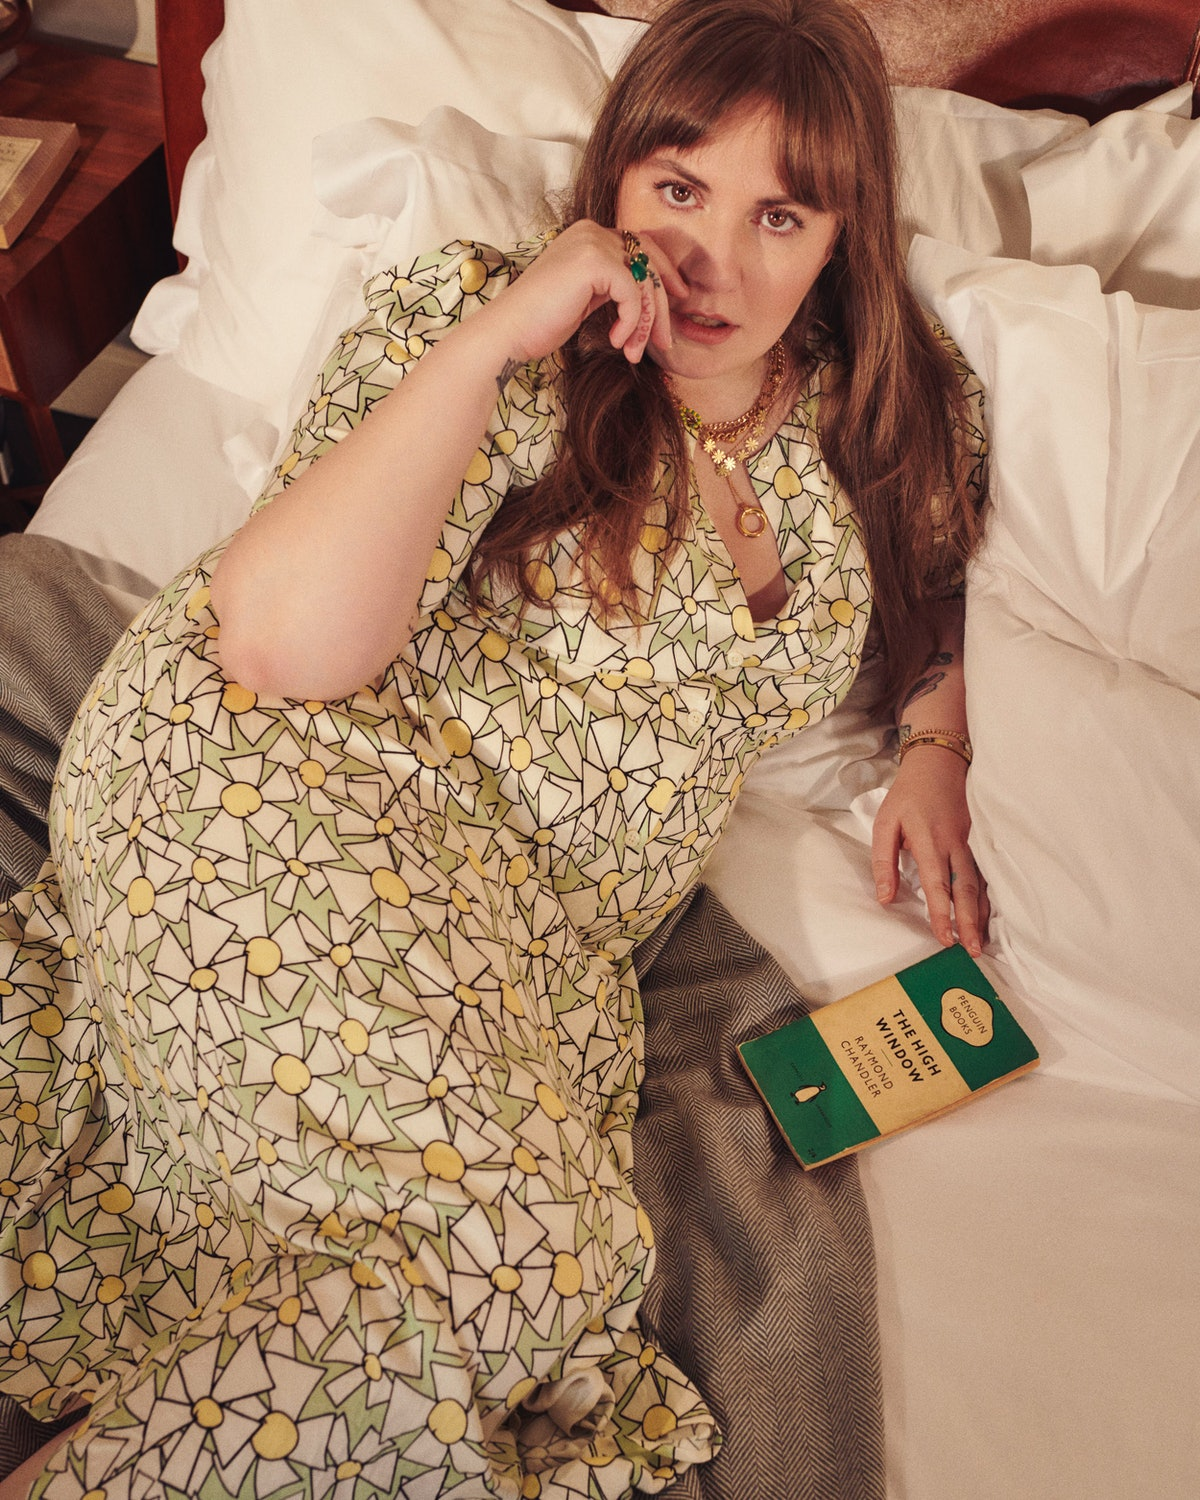 Lena Dunham wears a dress from her clothing line collaboration with plus-size designer brand and onl...